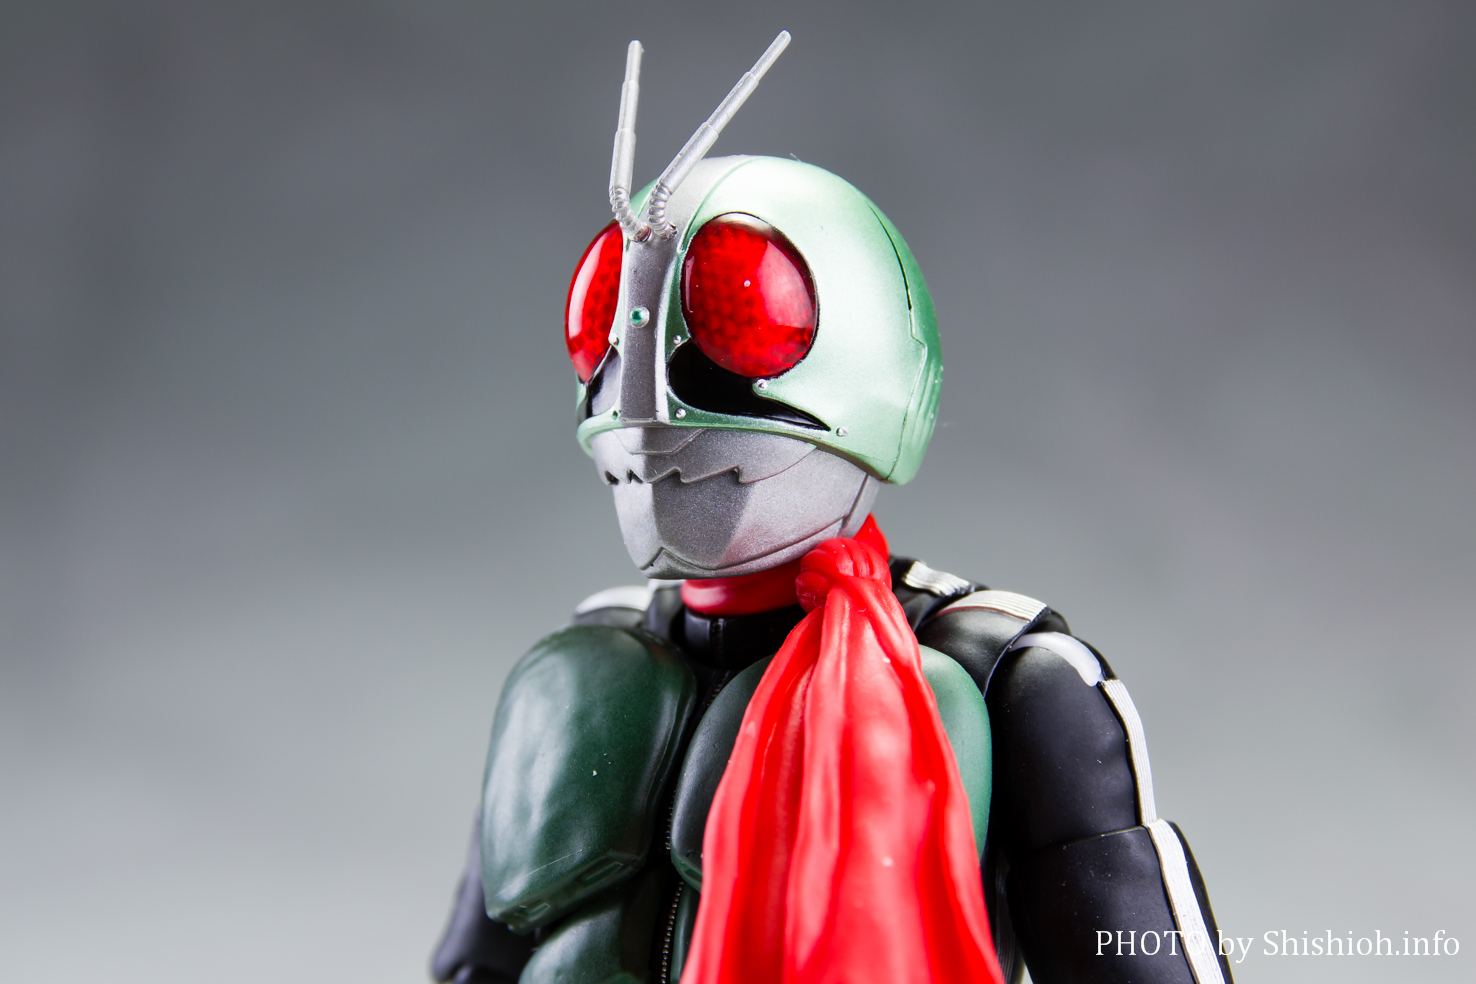 S.H.Figuarts(真骨彫製法)仮面ライダー新2号